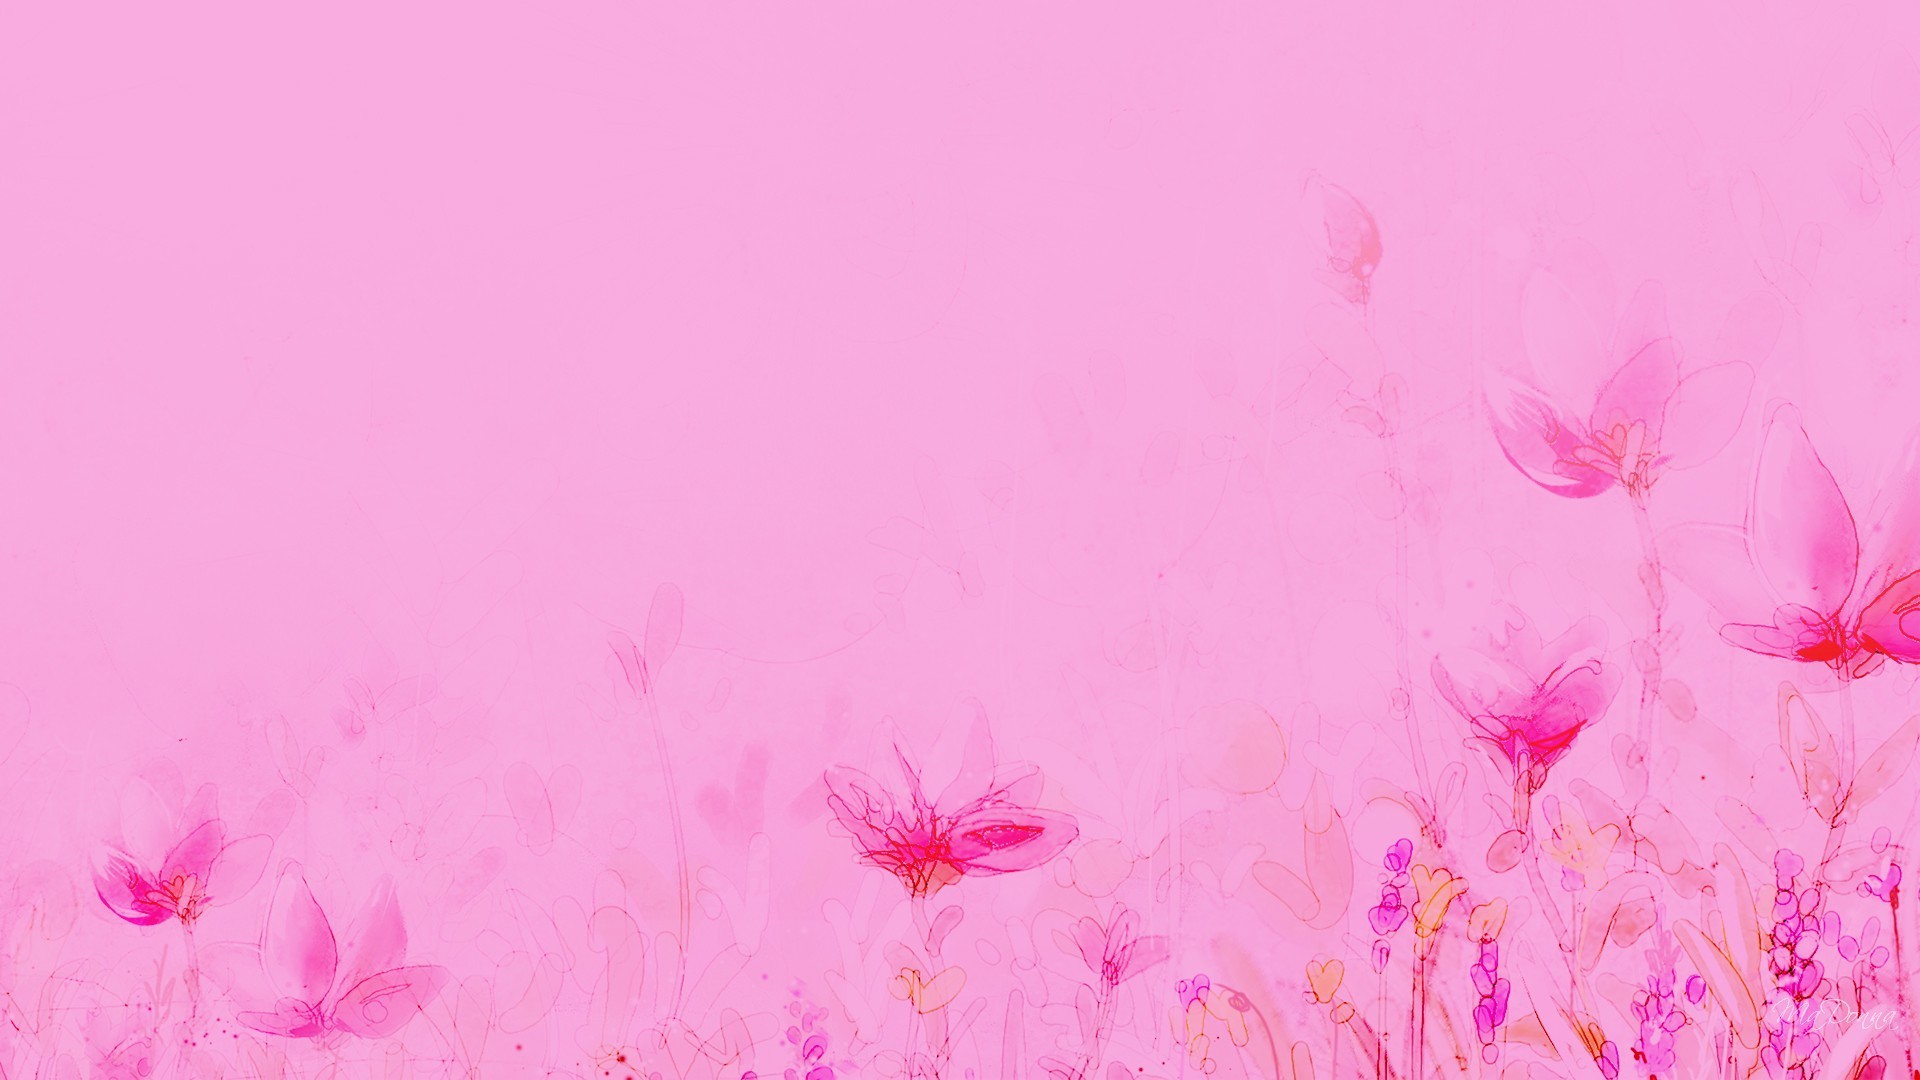 1920x1080 Cool Pink Backgrounds - Wallpaper Cave ...